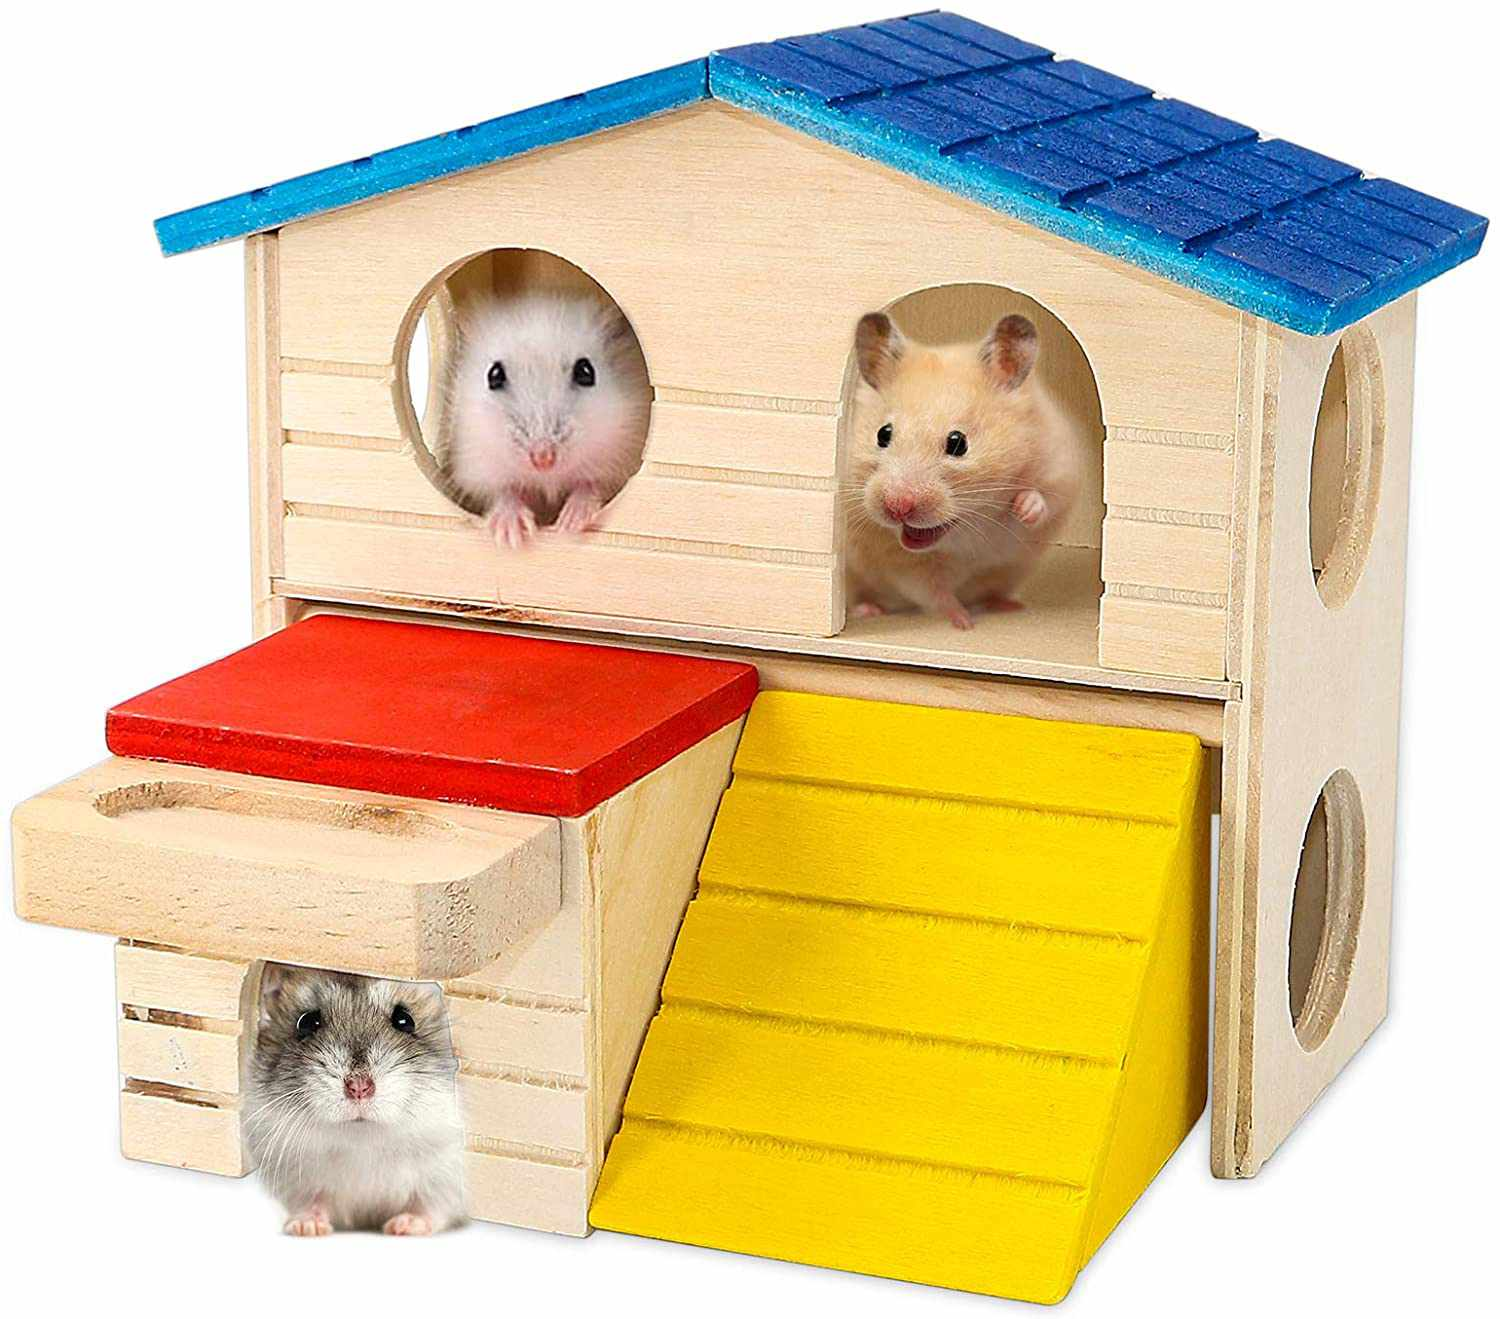 BWOGUE Pet Small Animal Hideout Hamster House